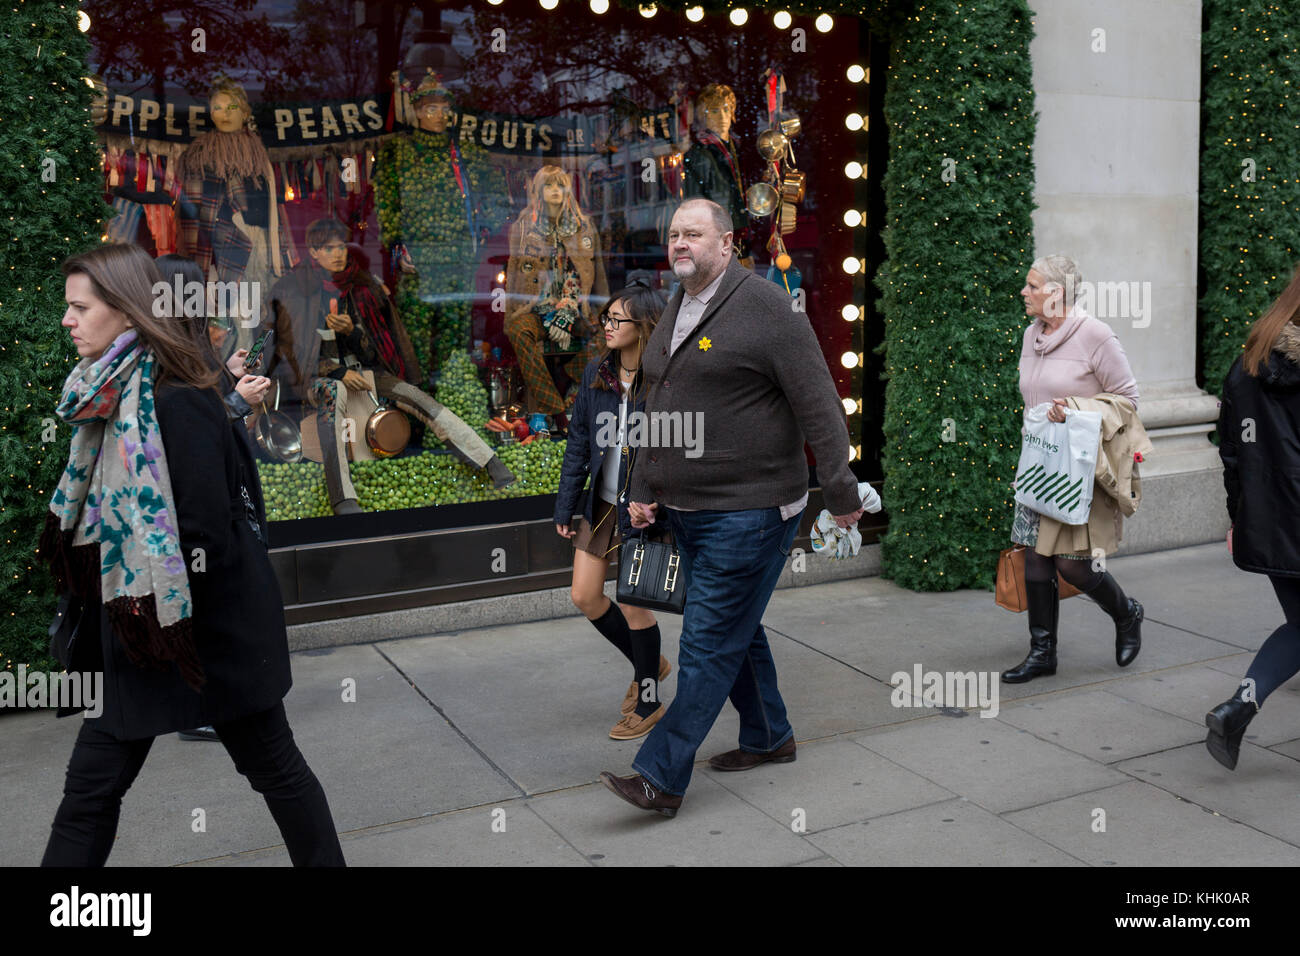 Young girl holds hands with an older man outside Selfridges, on 9th November 2017, London, England. - Stock Image